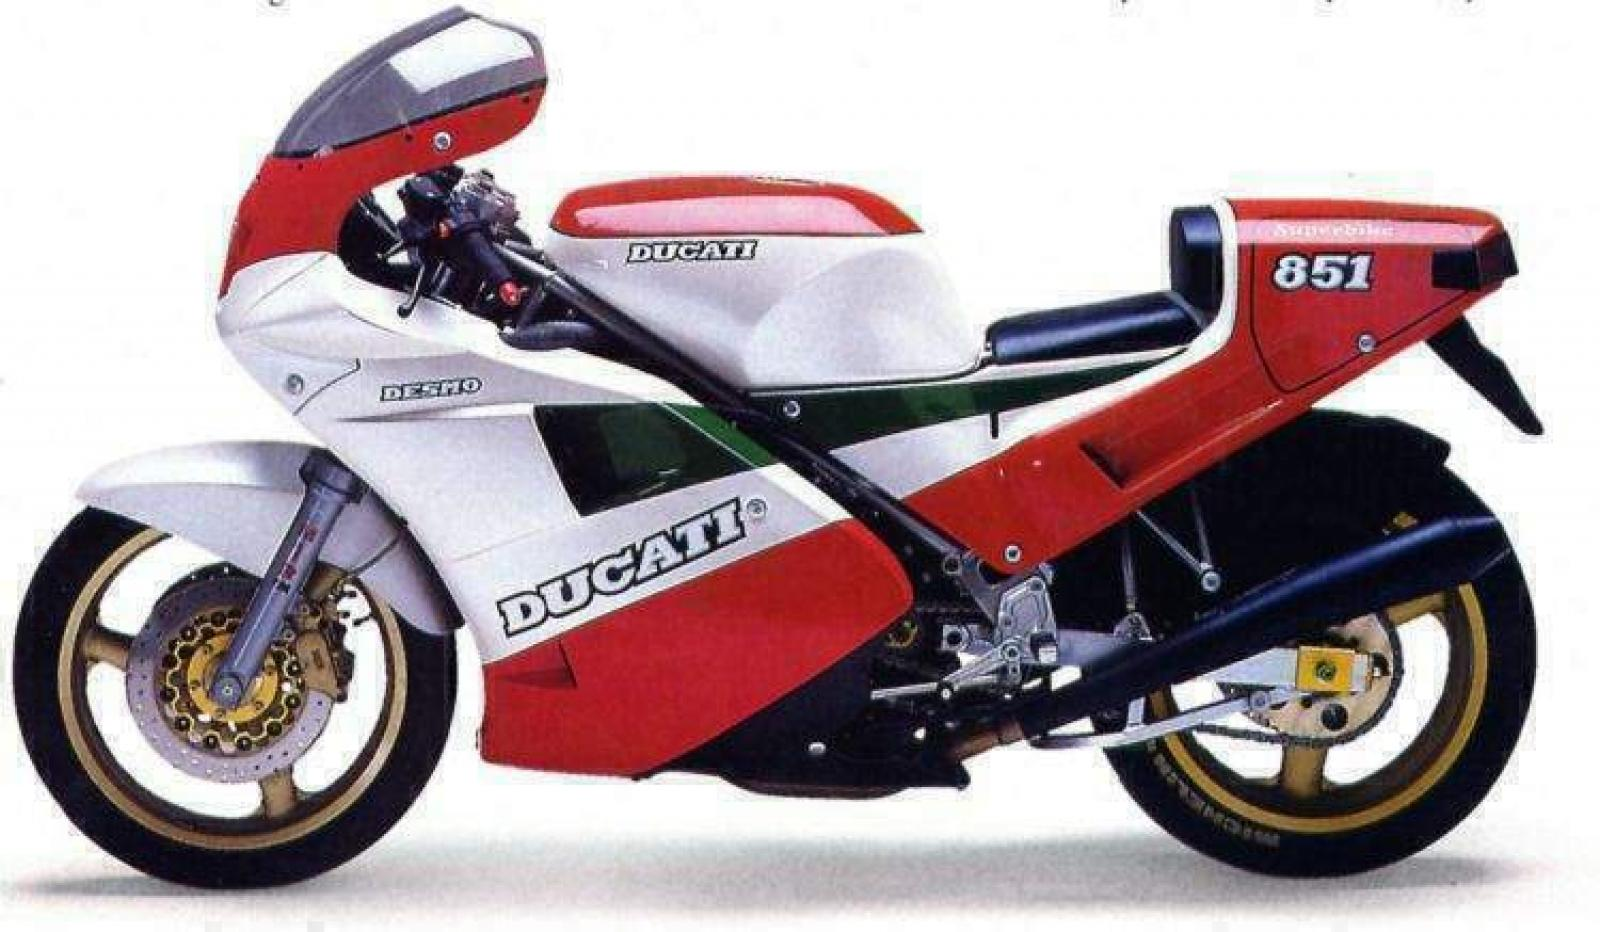 Ducati 851 Strada 1990 wallpapers #10630